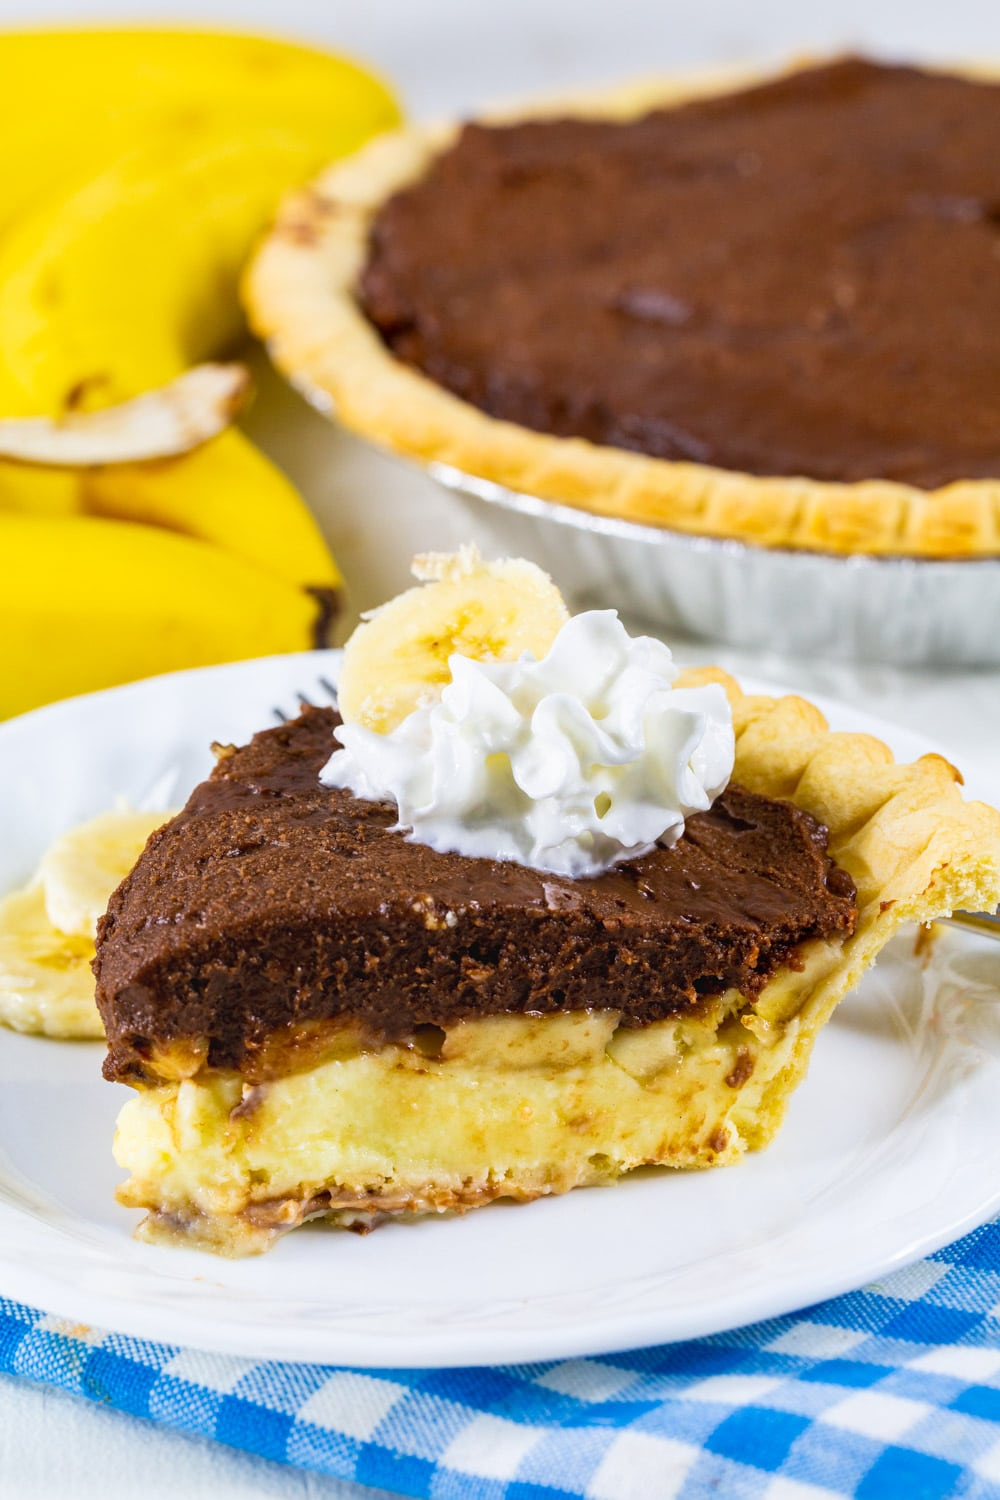 Slice of Banana Cream Pie with Chocolate on a plate.